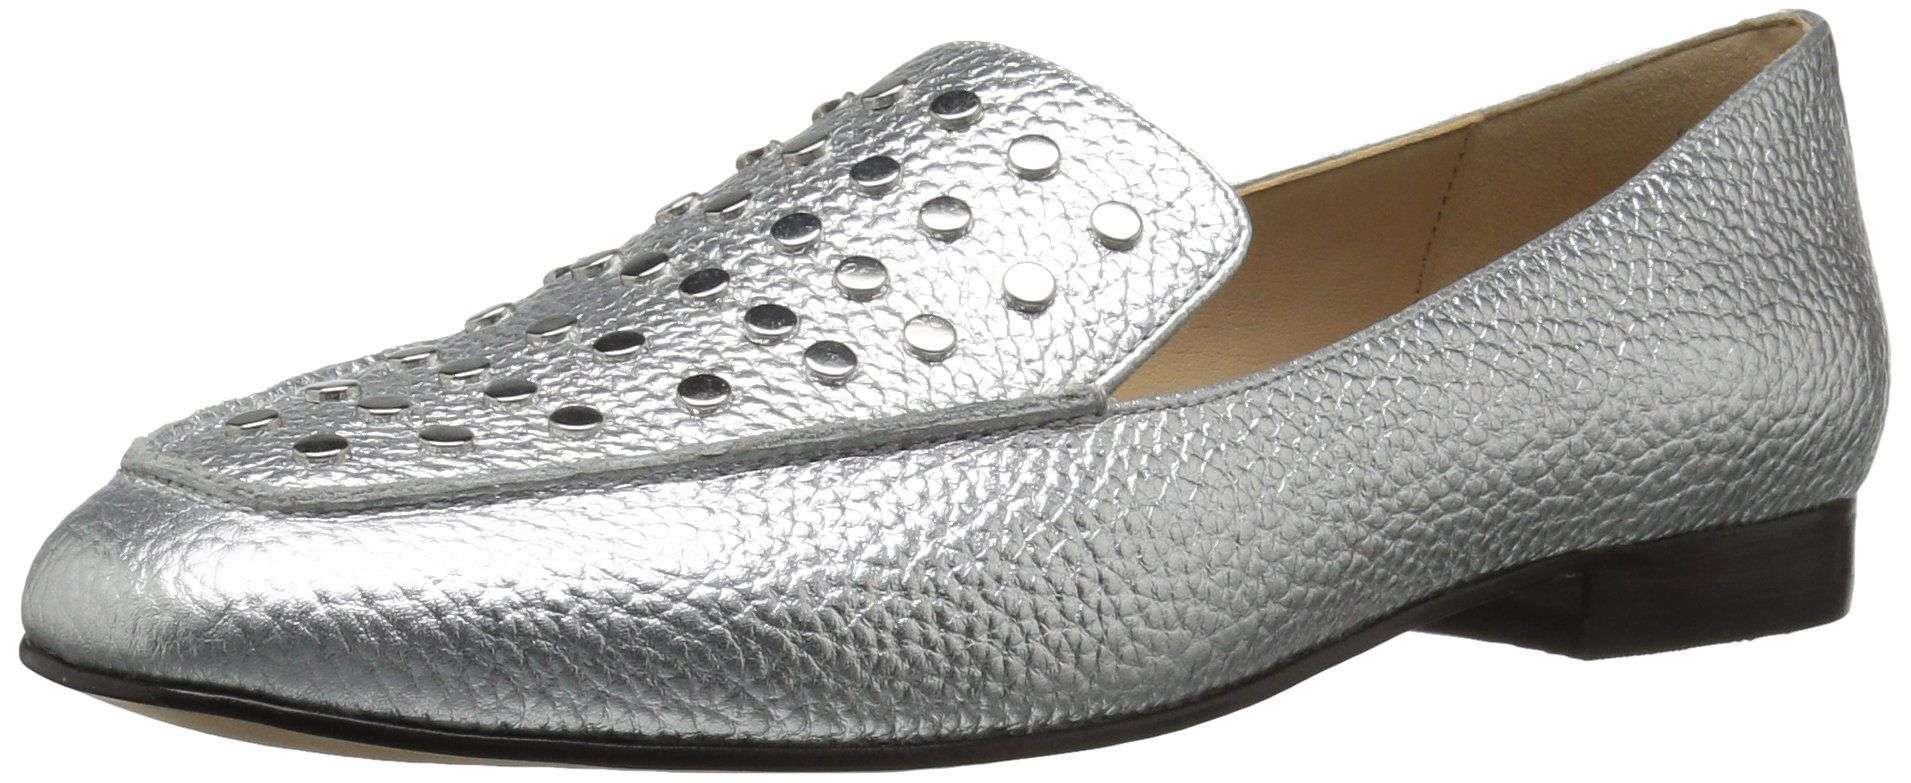 Image result for The Fix Women's Dakoda Silver Head Stud Loafer Flat